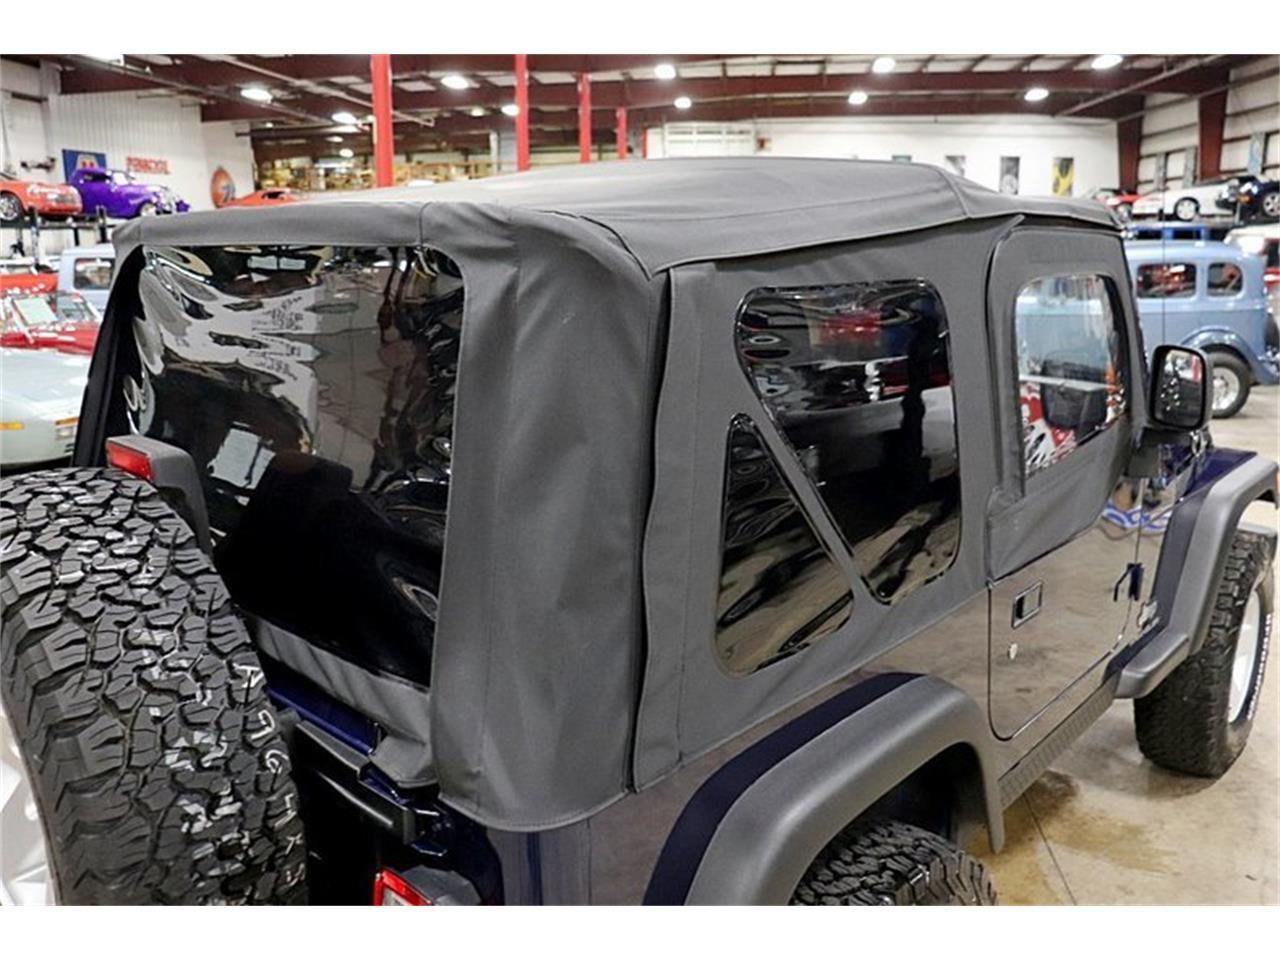 2005 Jeep Wrangler for sale in Kentwood, MI – photo 69